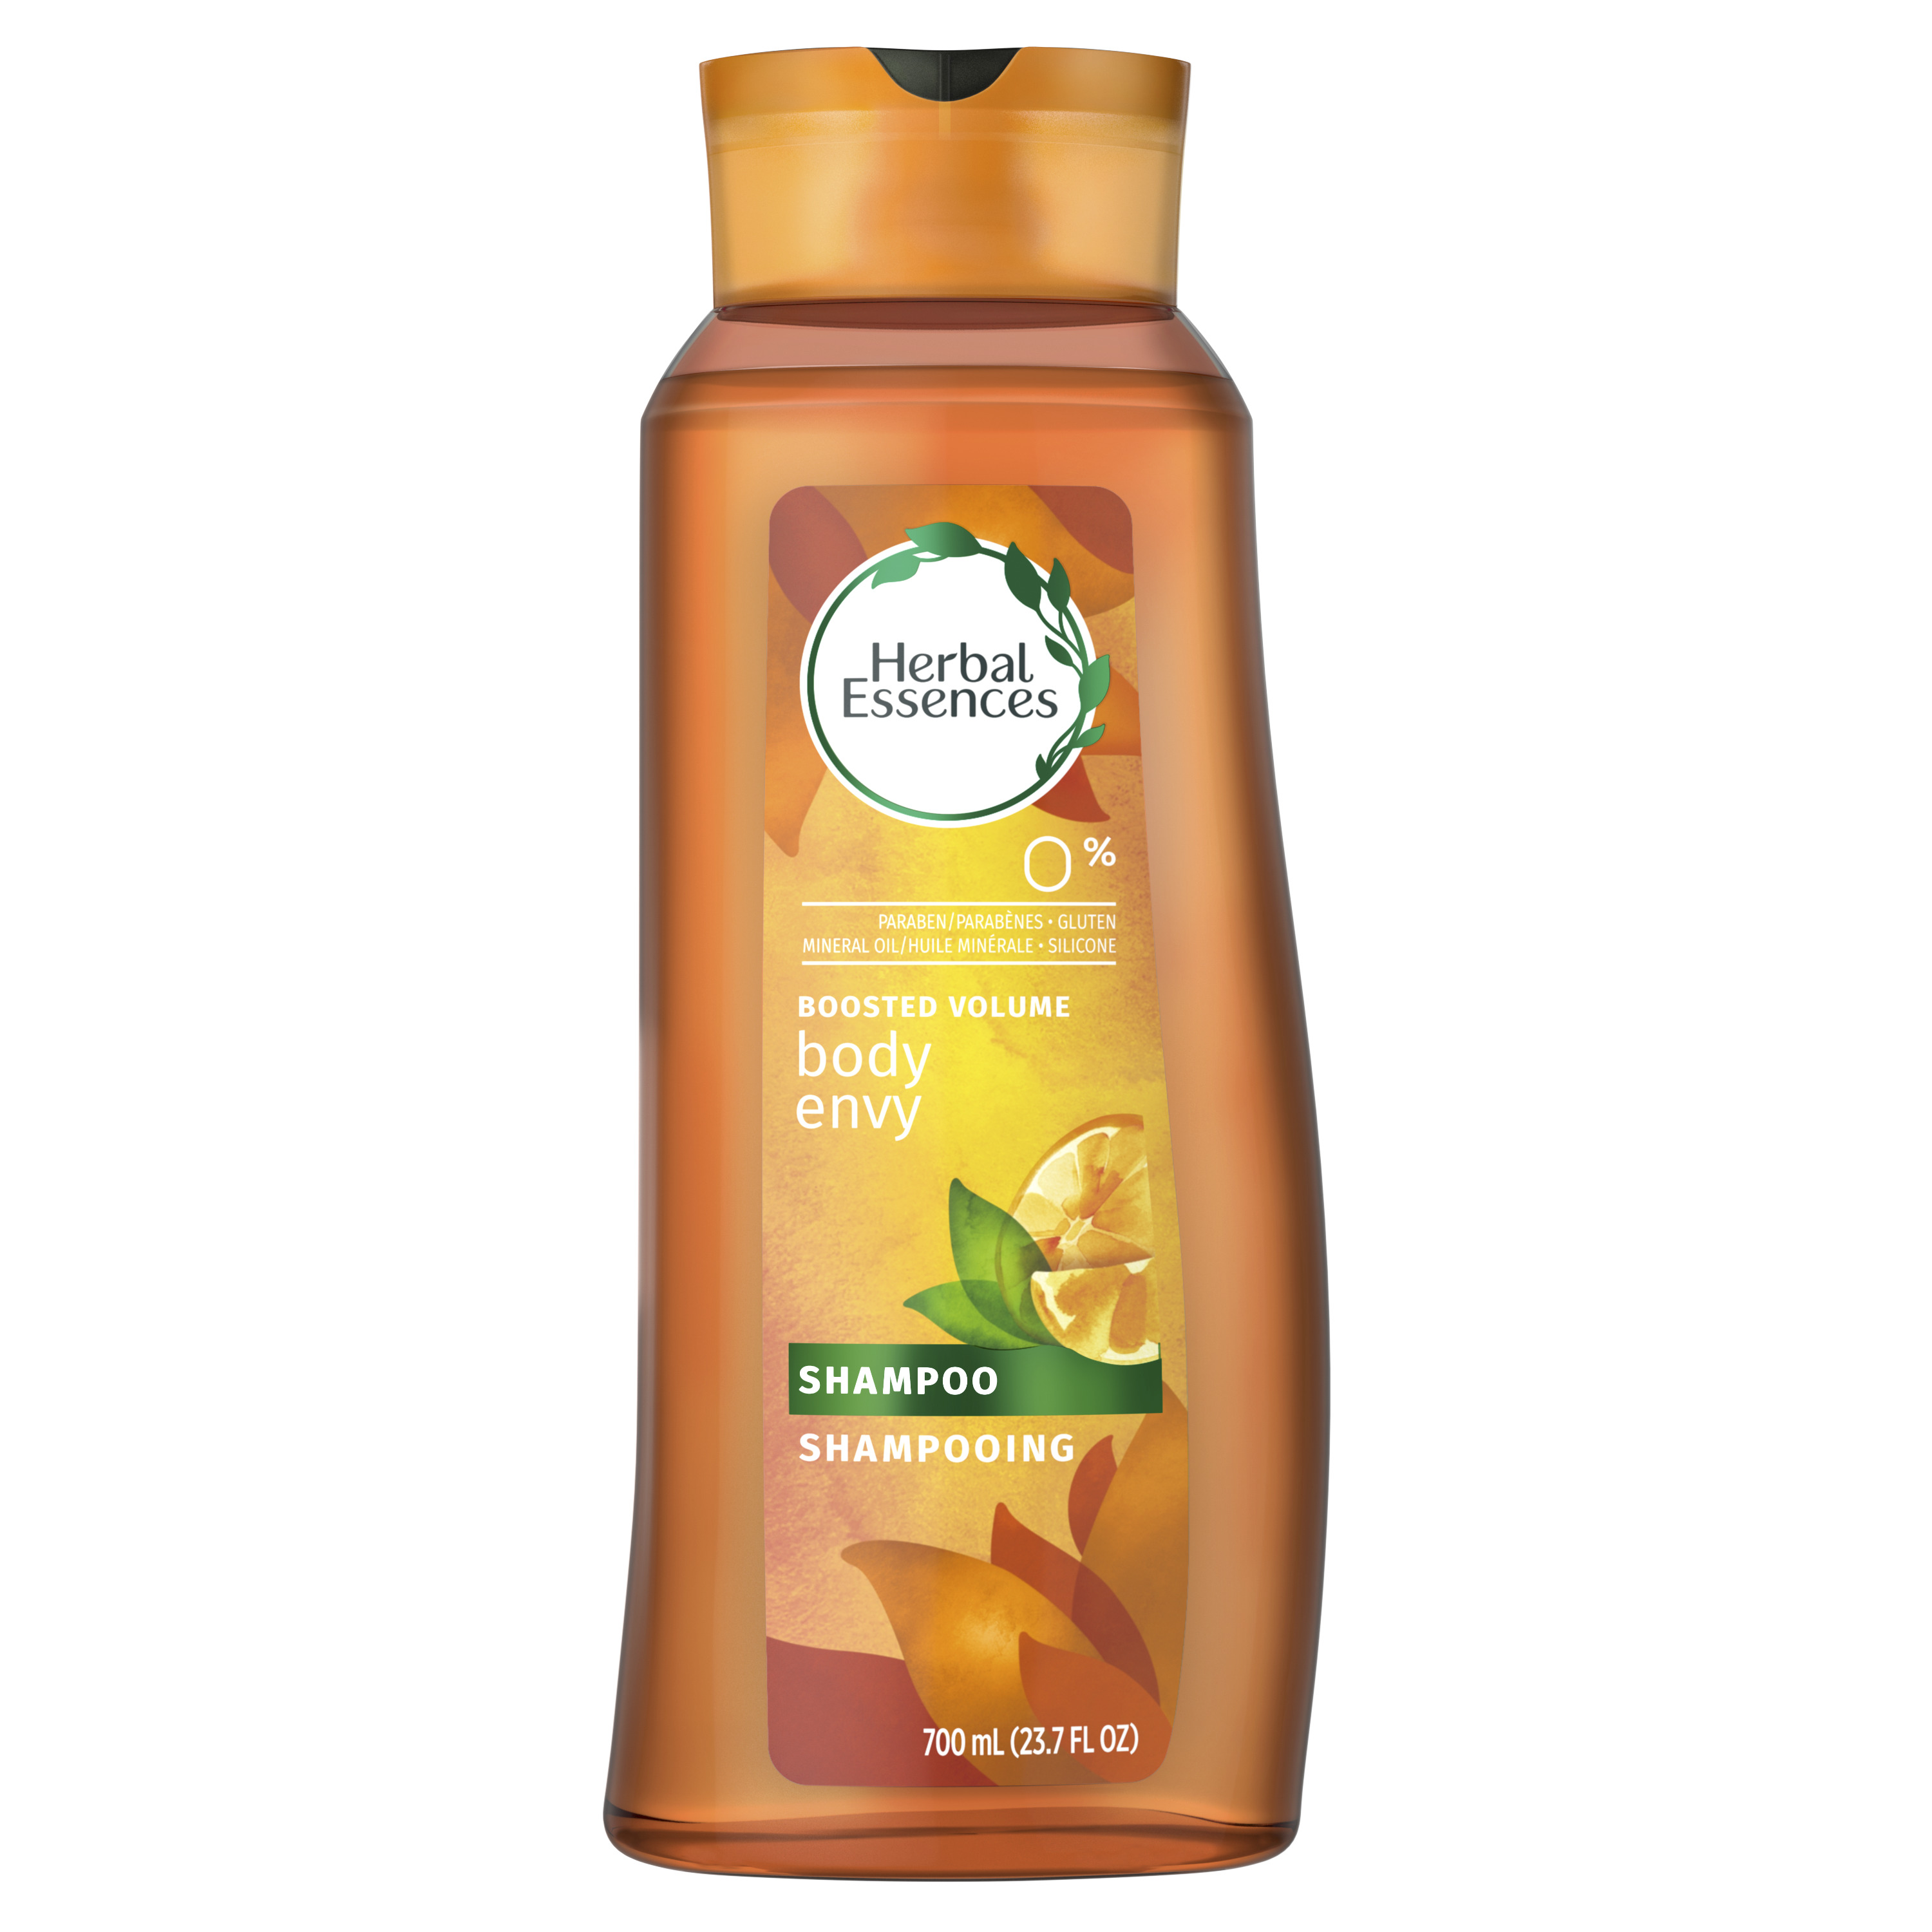 Herbal Essences Body Envy Volumizing Shampoo with Citrus Essences, 23.7 fl oz